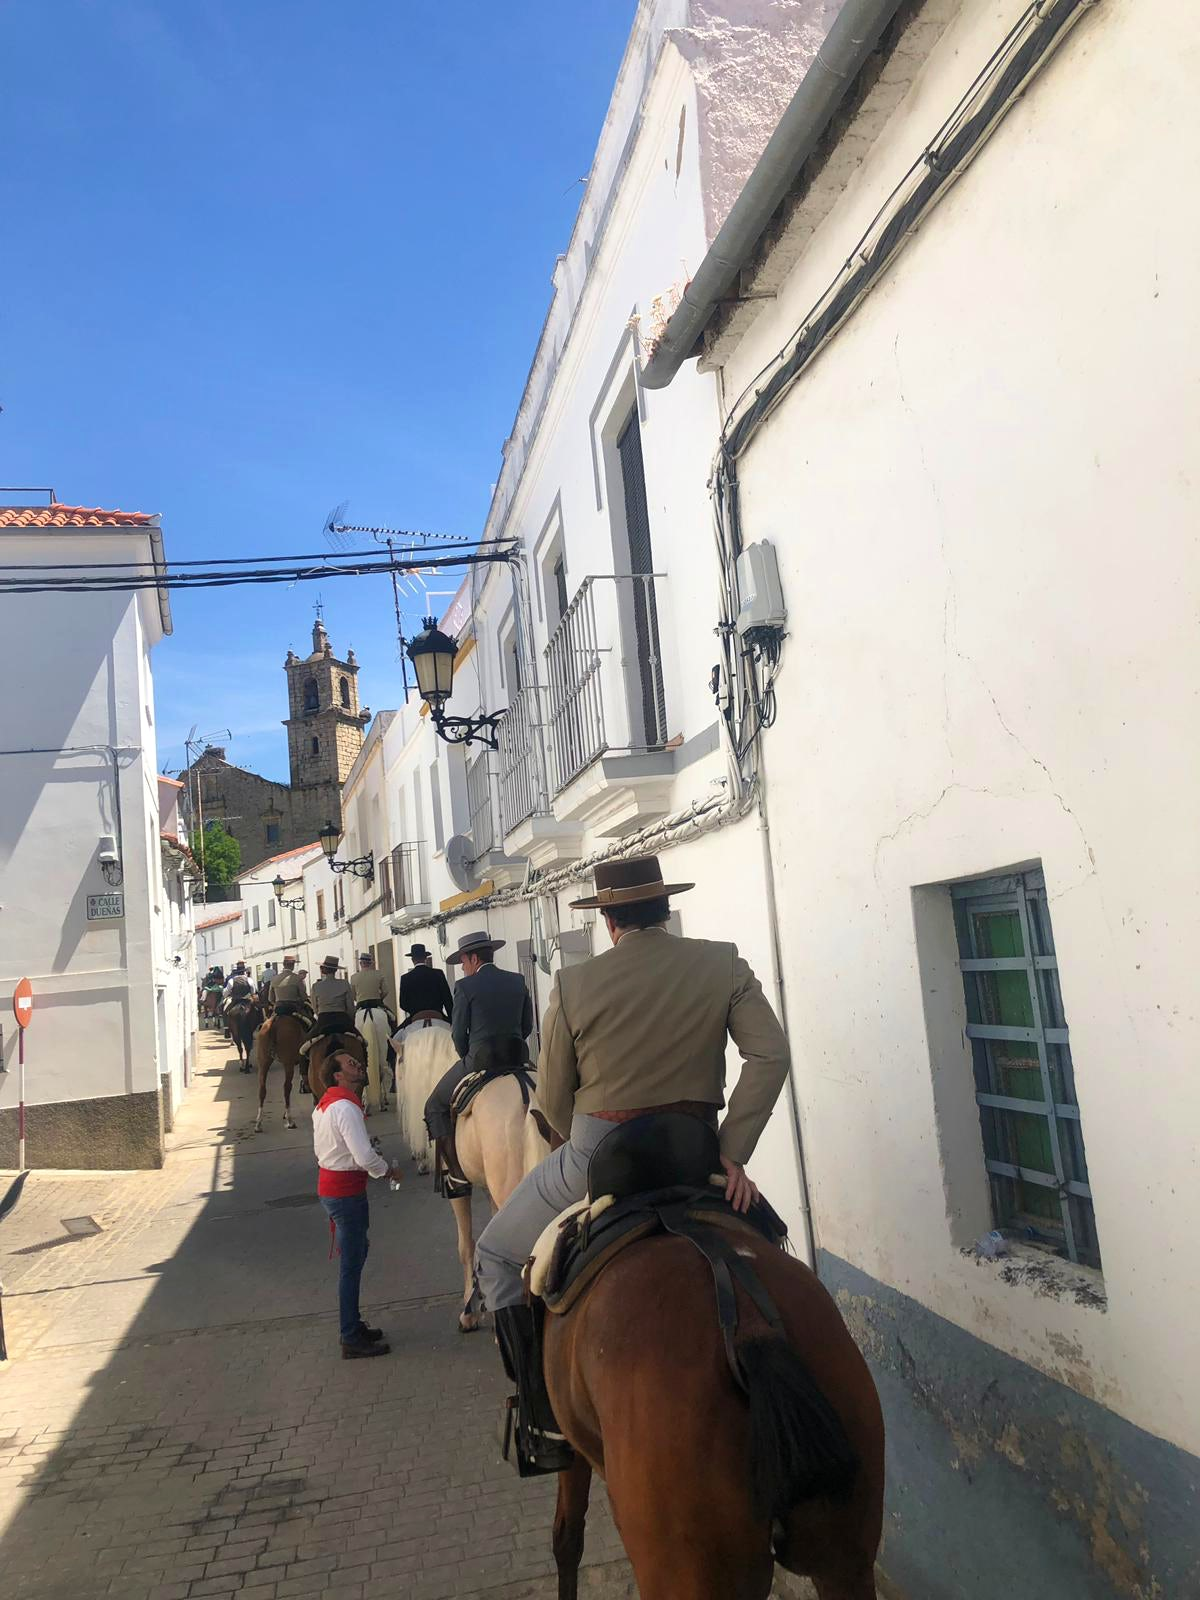 May 15th, a traditional Spanish celebration in the countryside